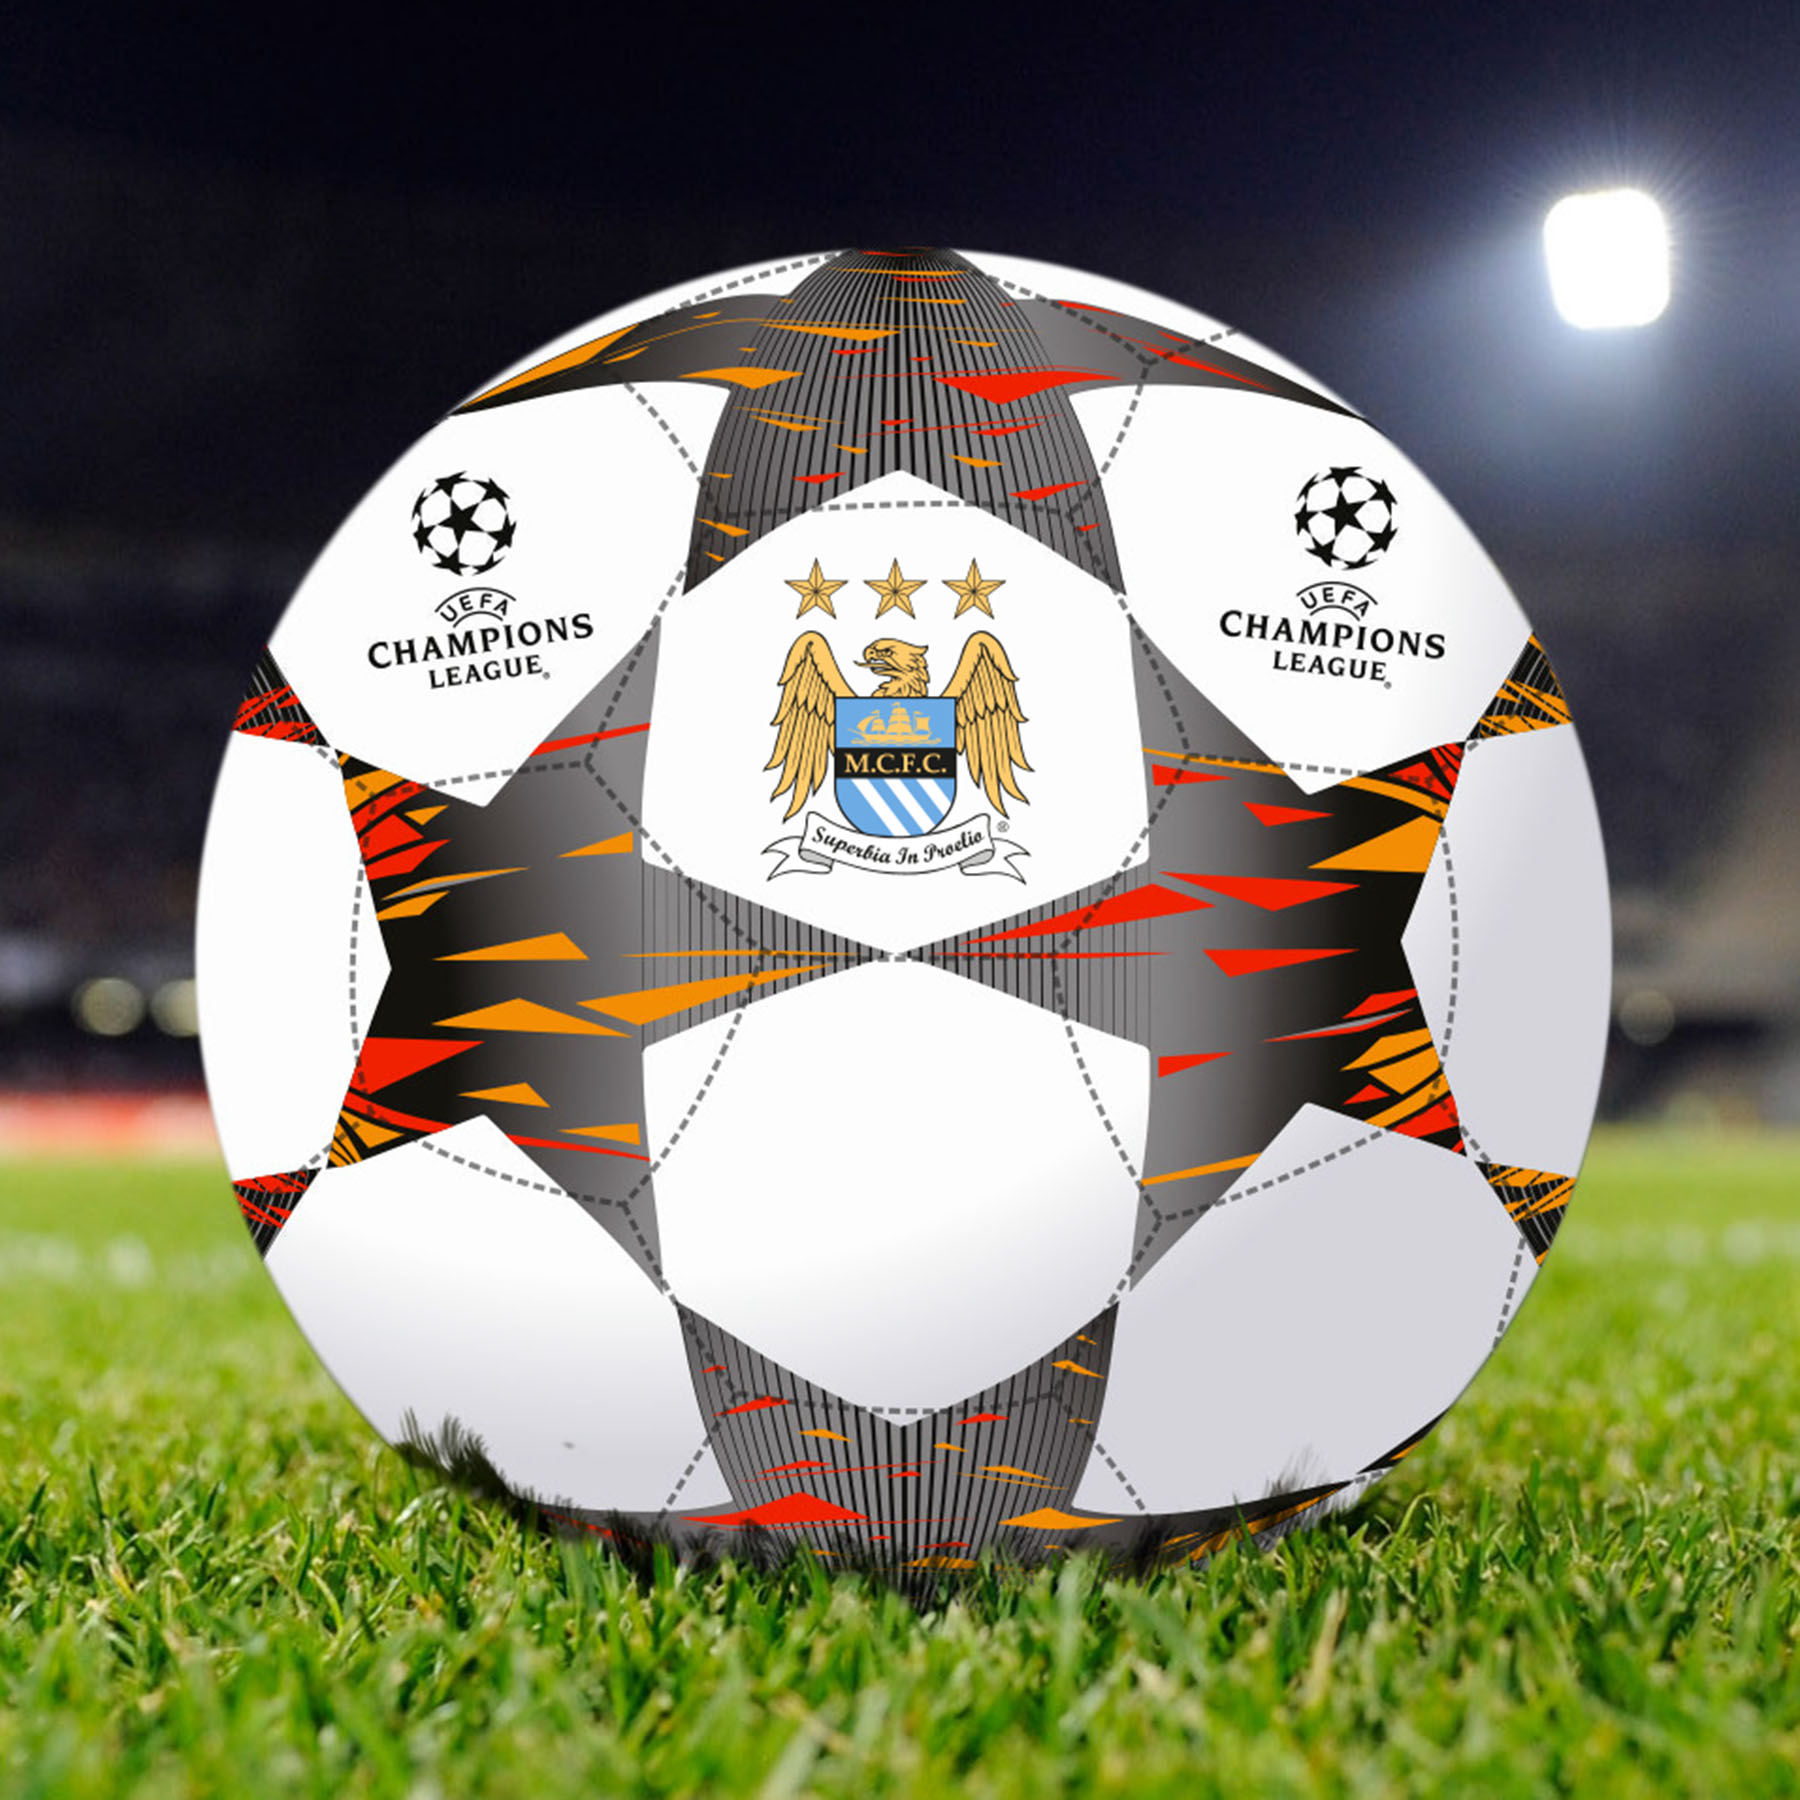 Manchester City Champions League Size 5 replica Football